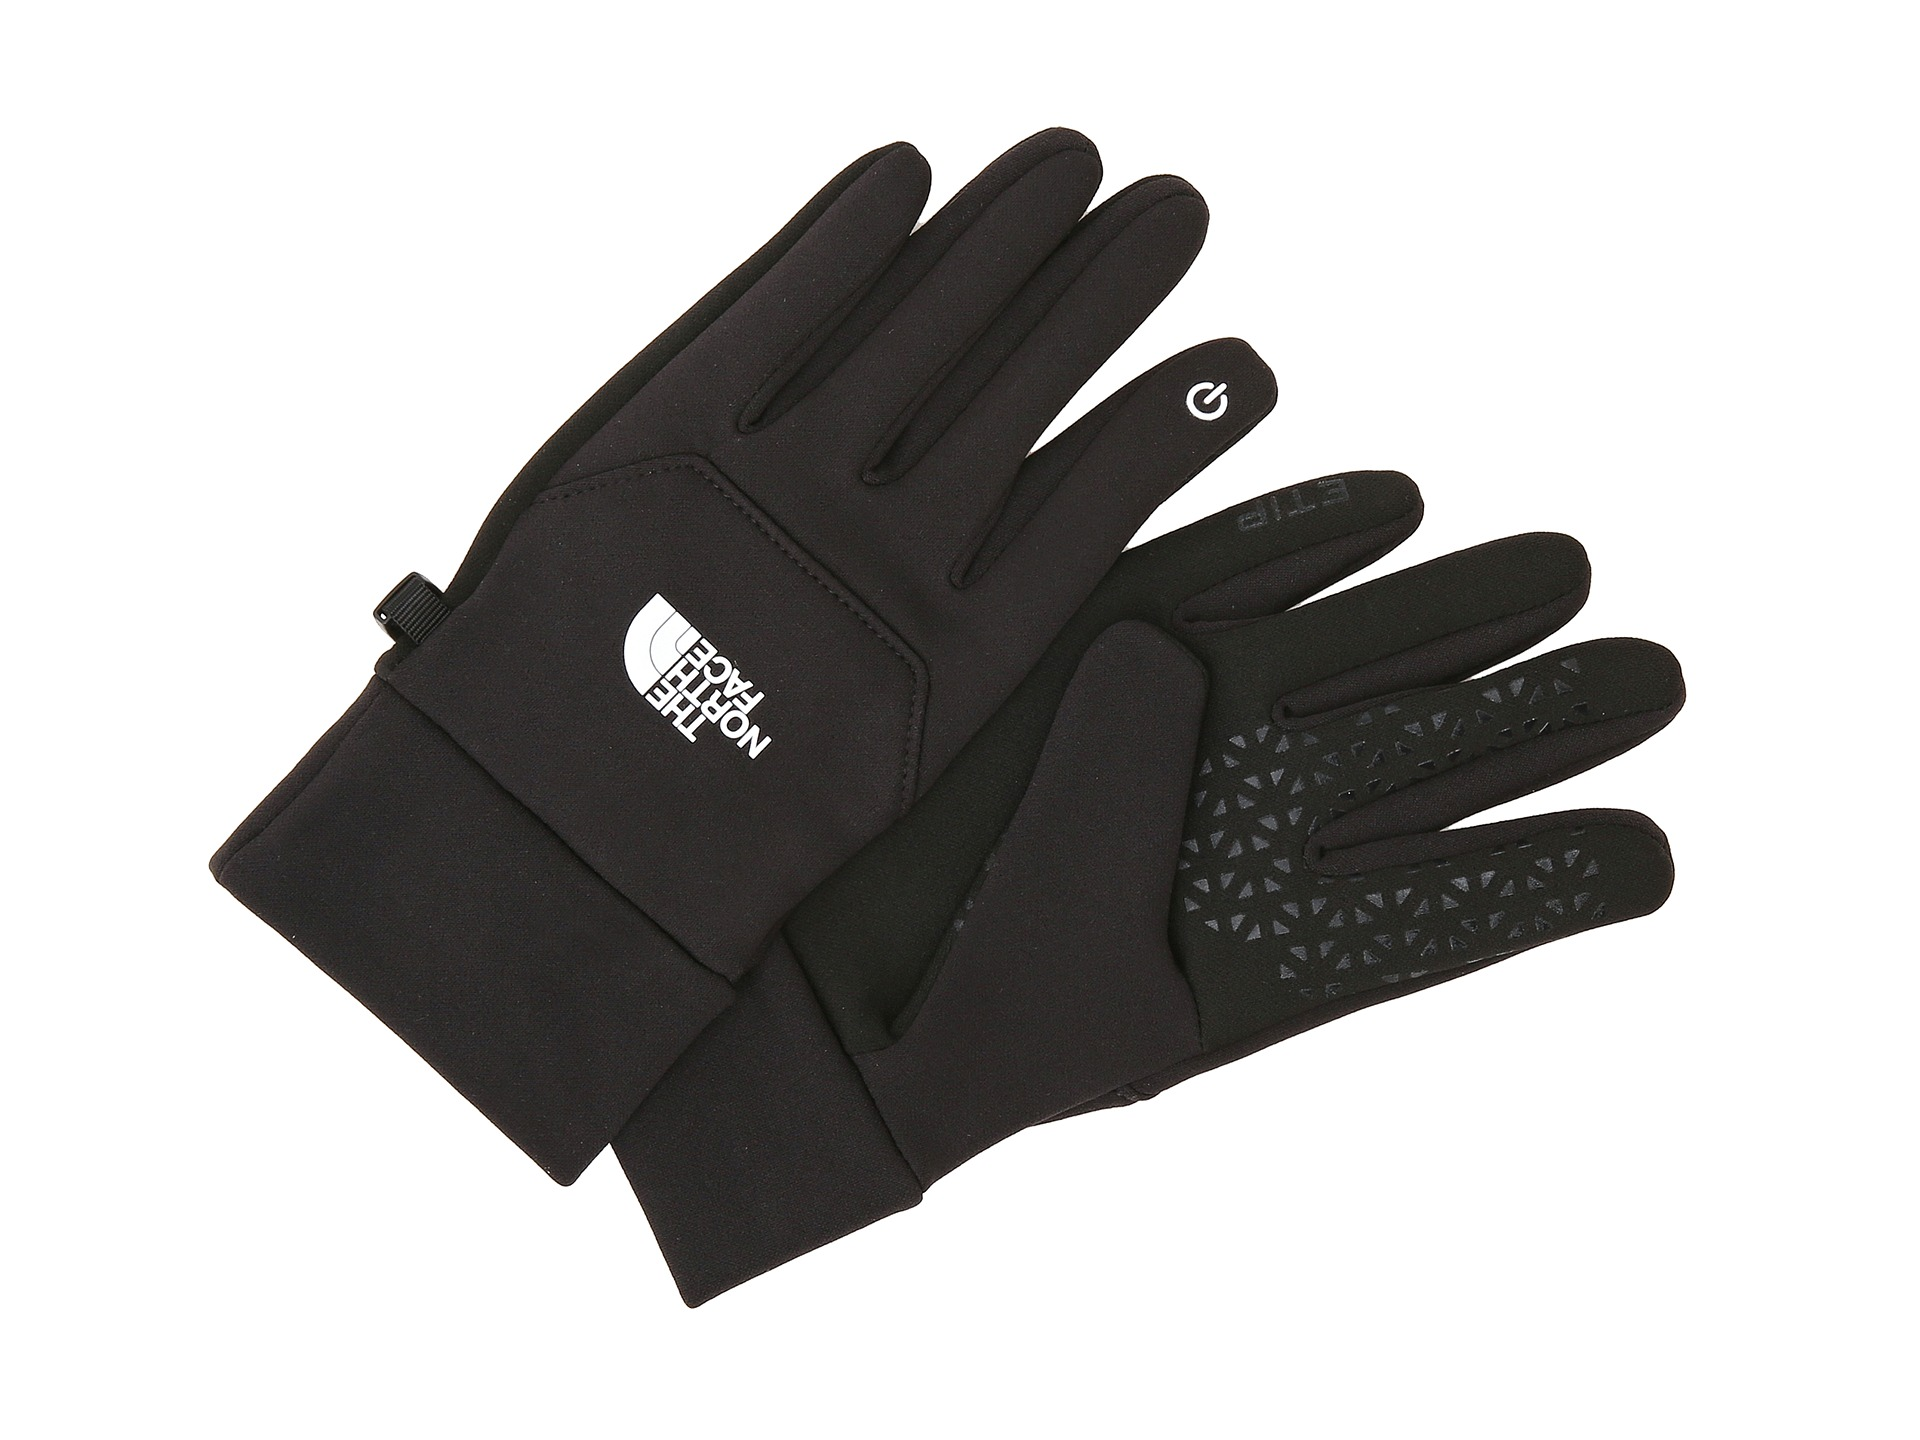 Best winter driving gloves for Canadian winters